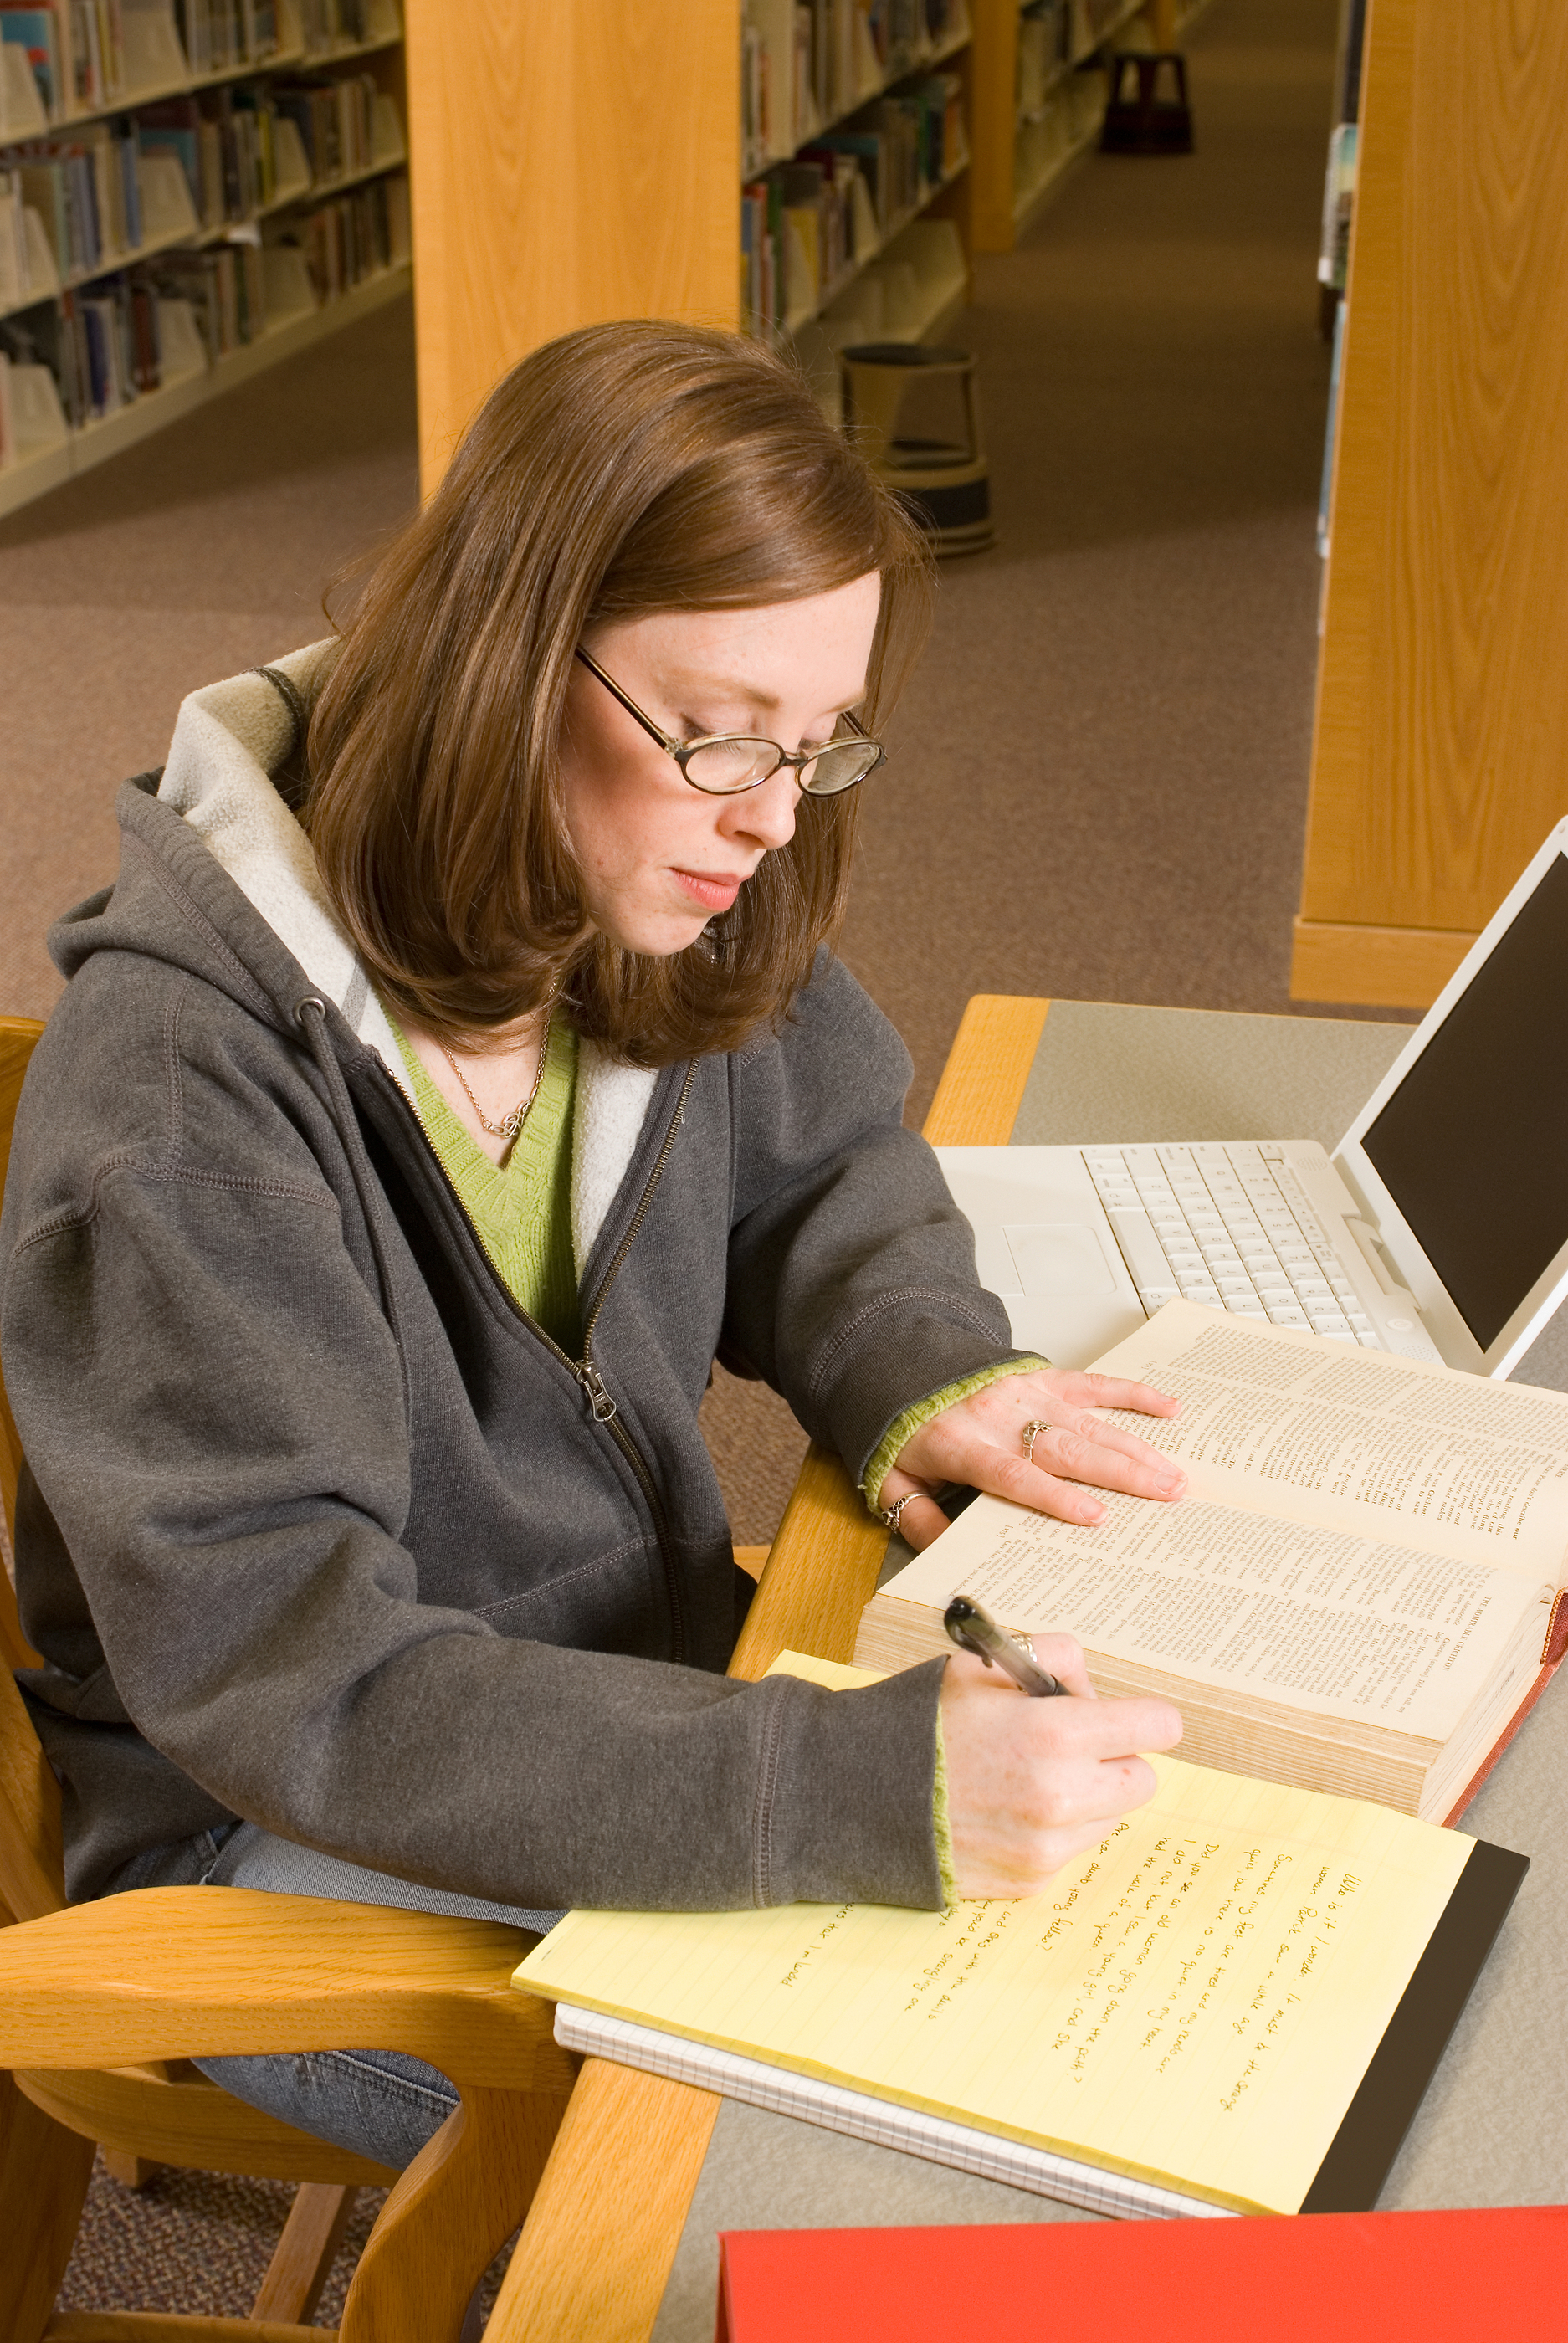 Overcoming common issues that undermine graduate enrollment management